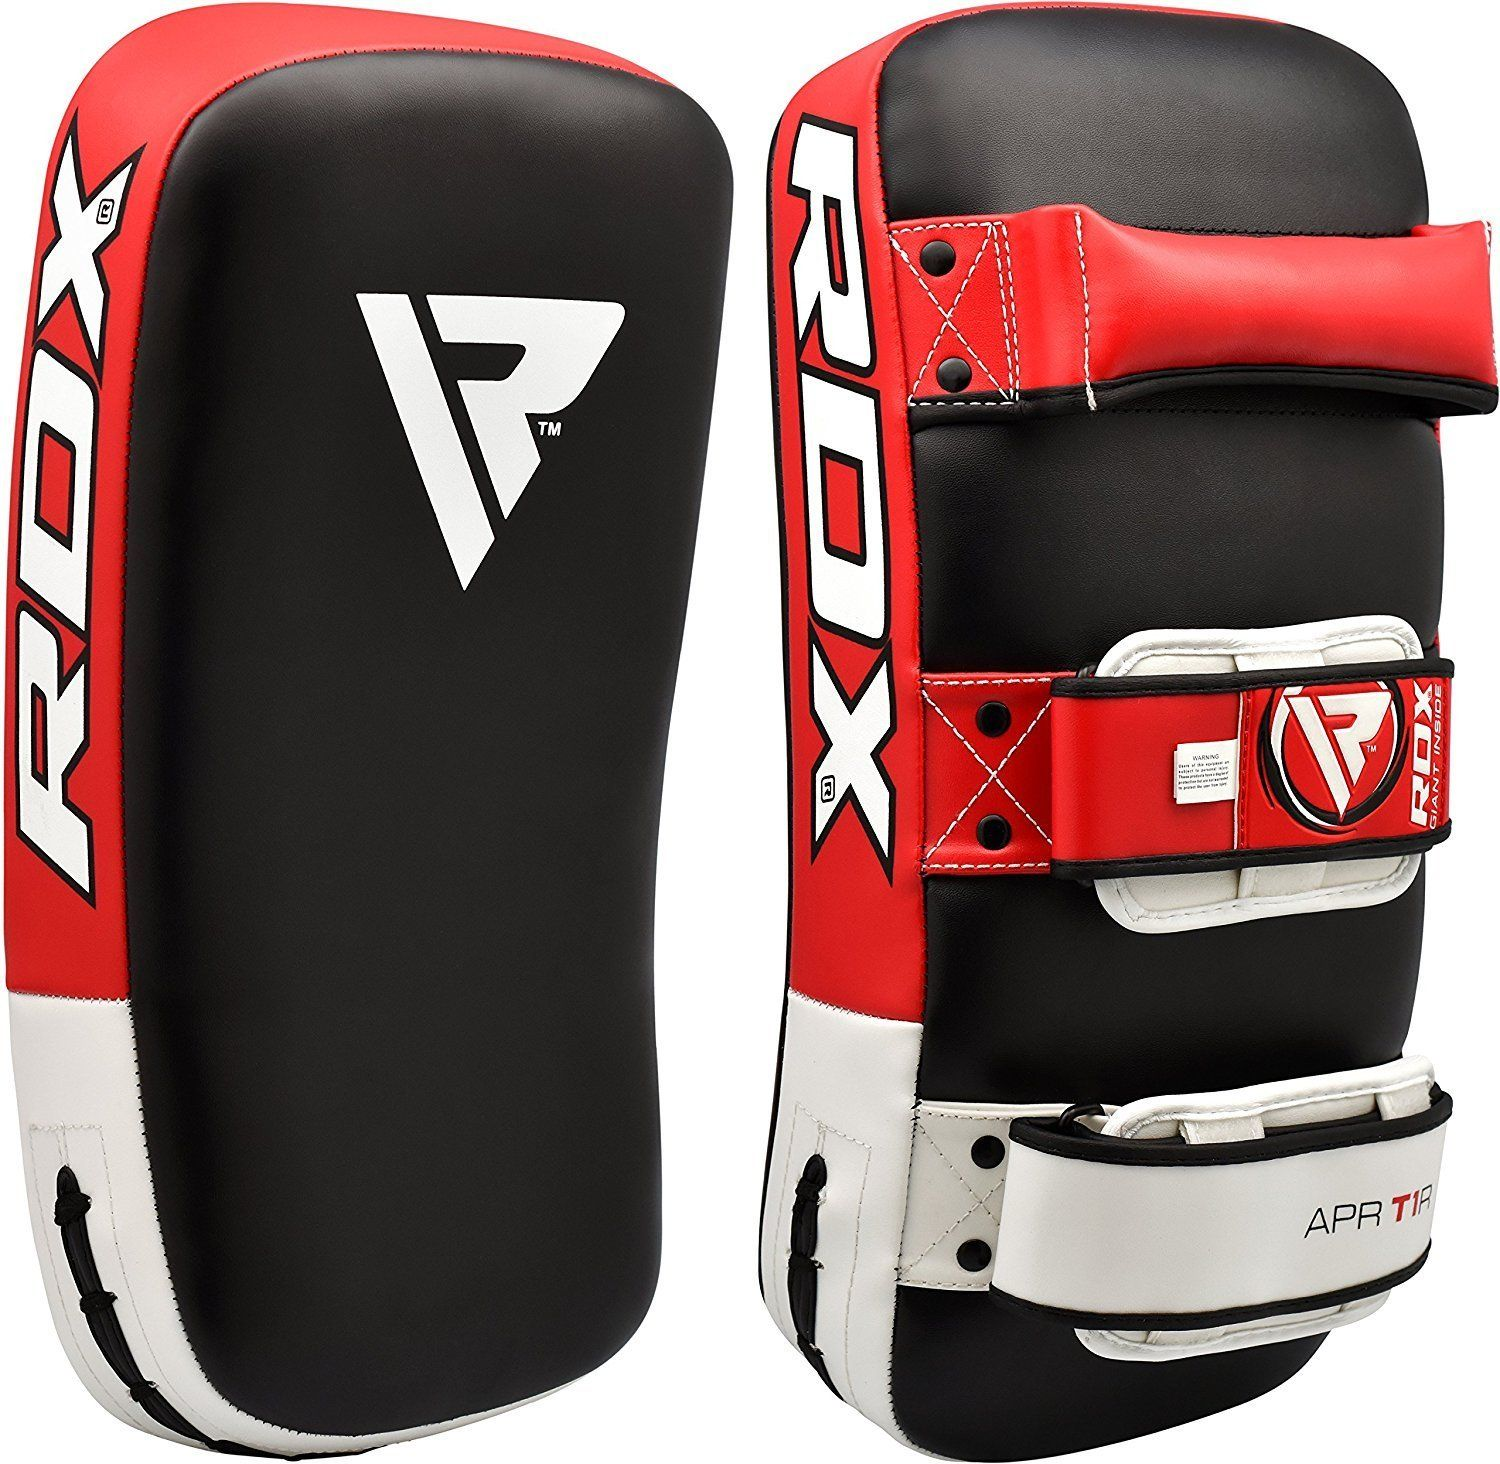 MMA Strike Shield Kickboxing Muay Thai Kick Punch Pad Training Gear Martial Arts